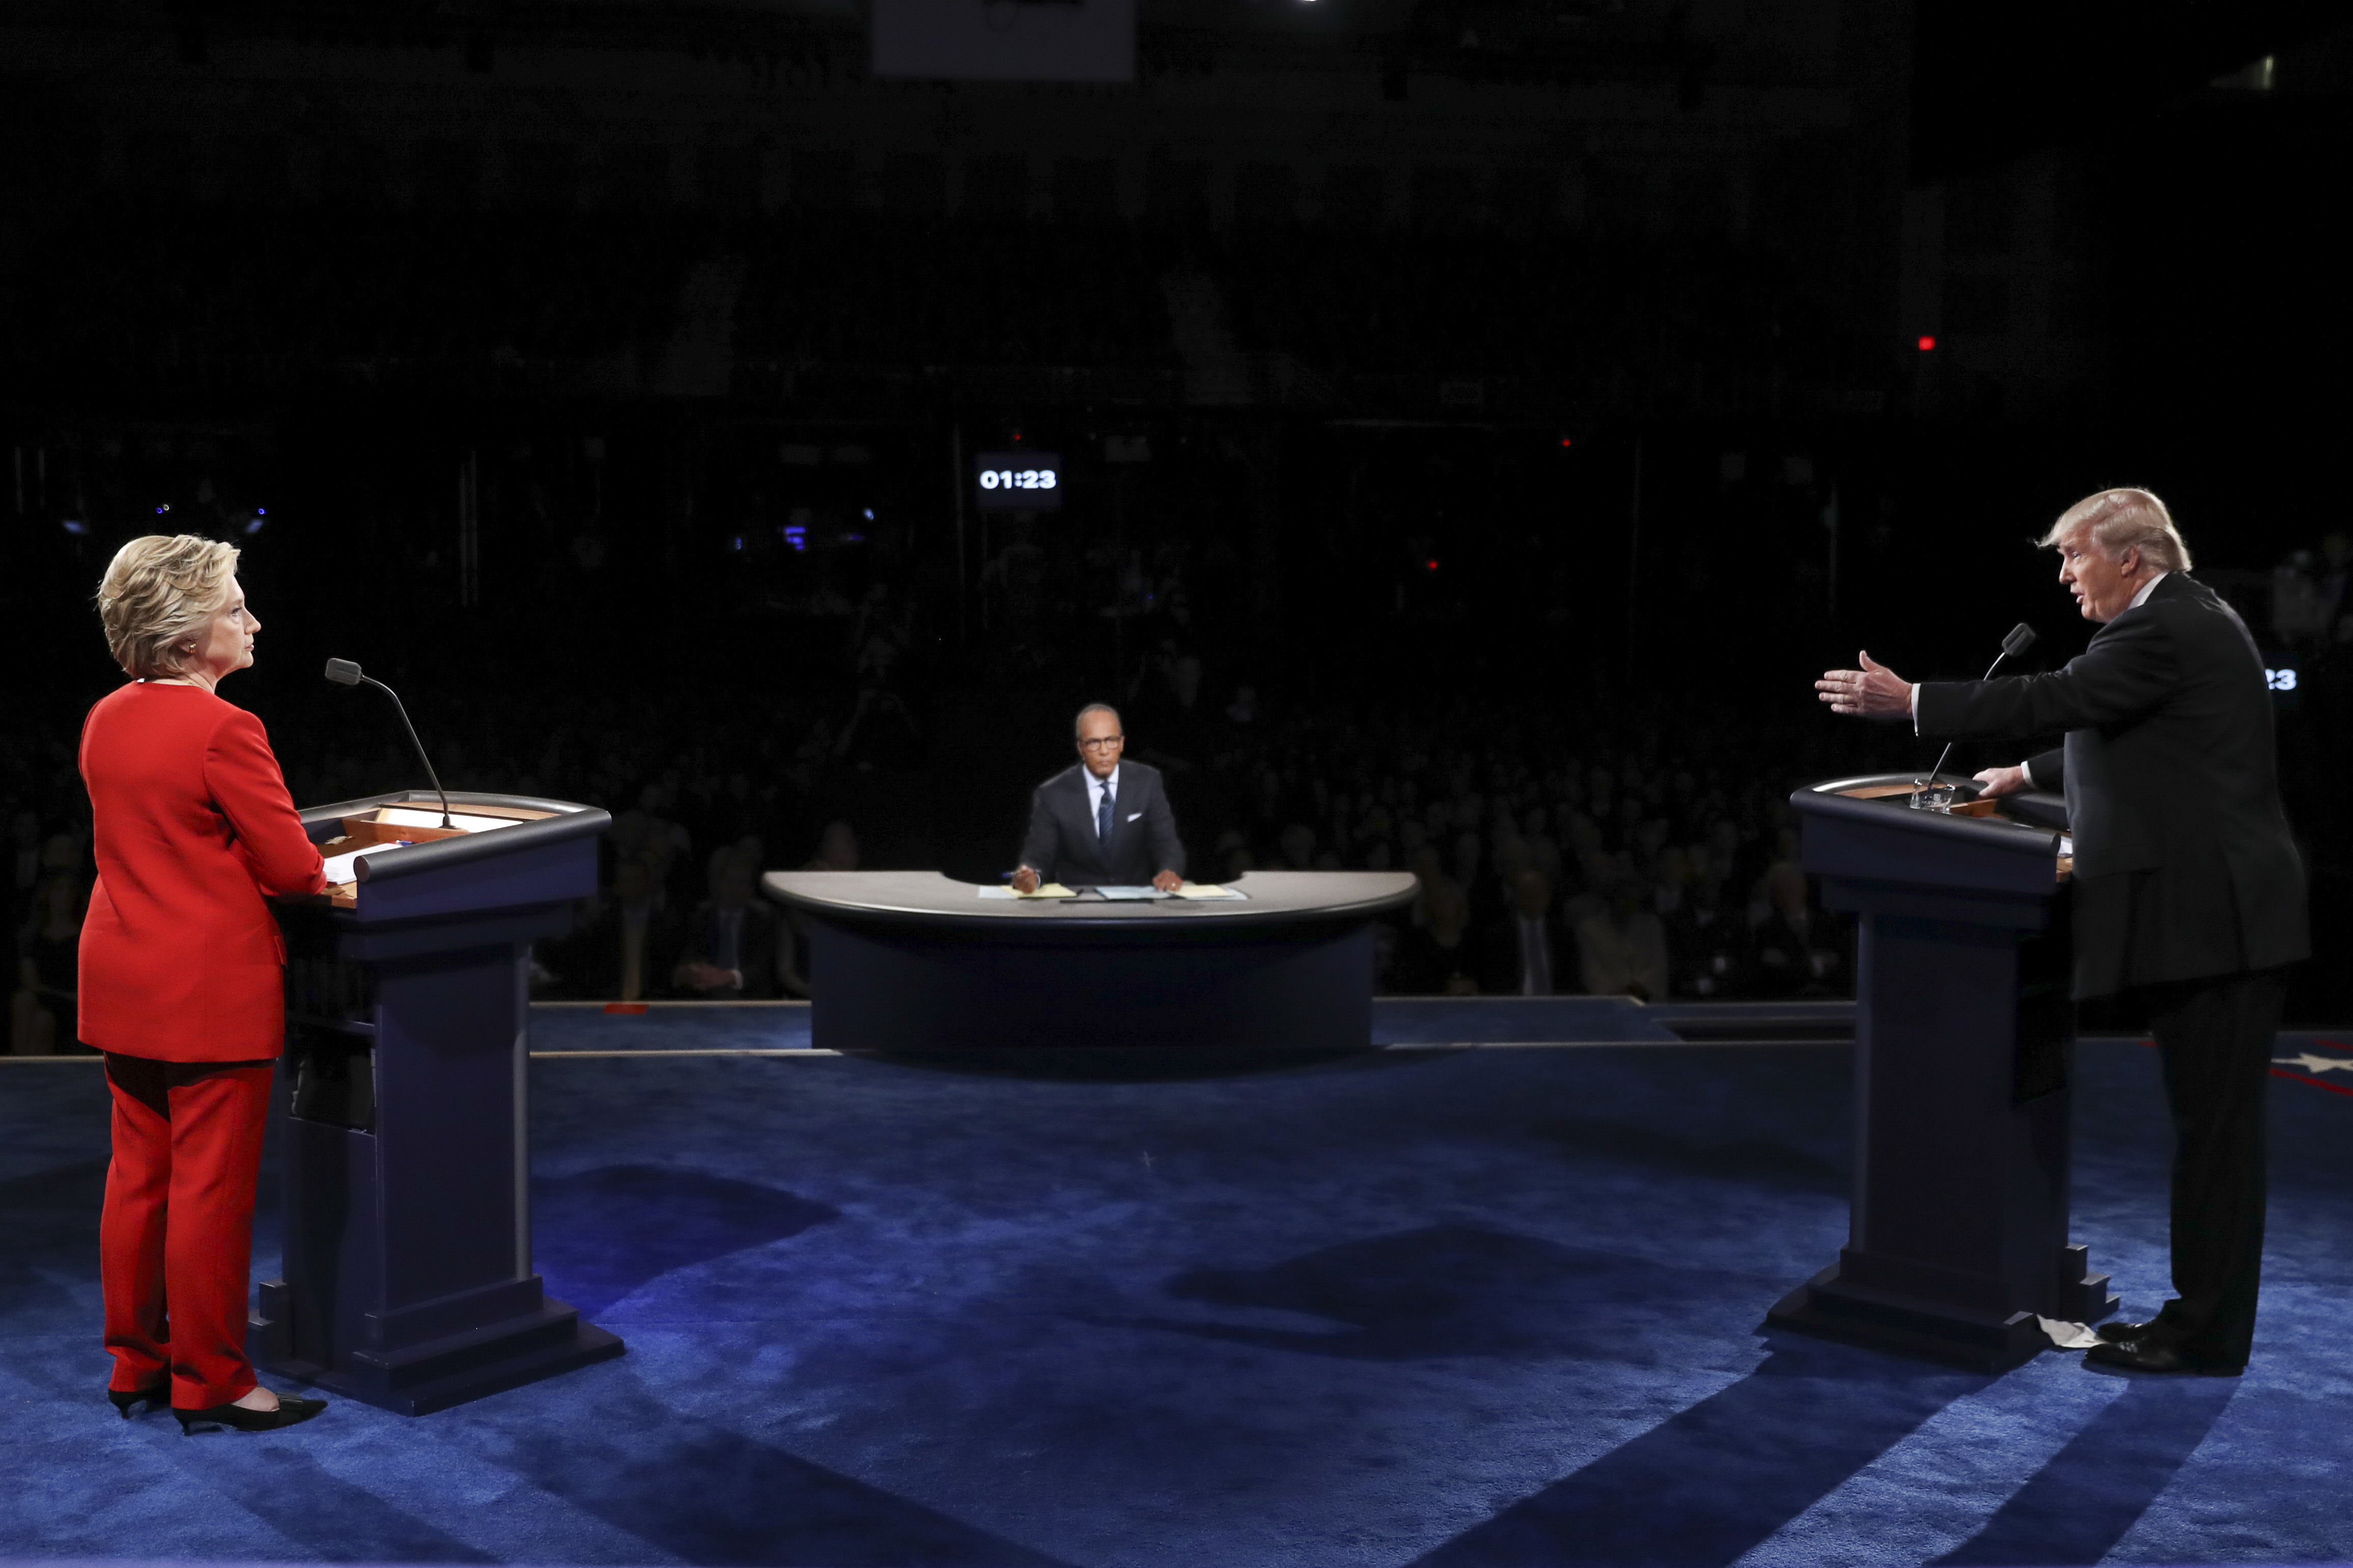 Republican presidential nominee Donald Trump points toward Democratic presidential nominee Hillary Clinton during the presidential debate at Hofstra University in Hempstead, N.Y., Monday, Sept. 26, 2016. (Joe Raedle/Pool via AP)